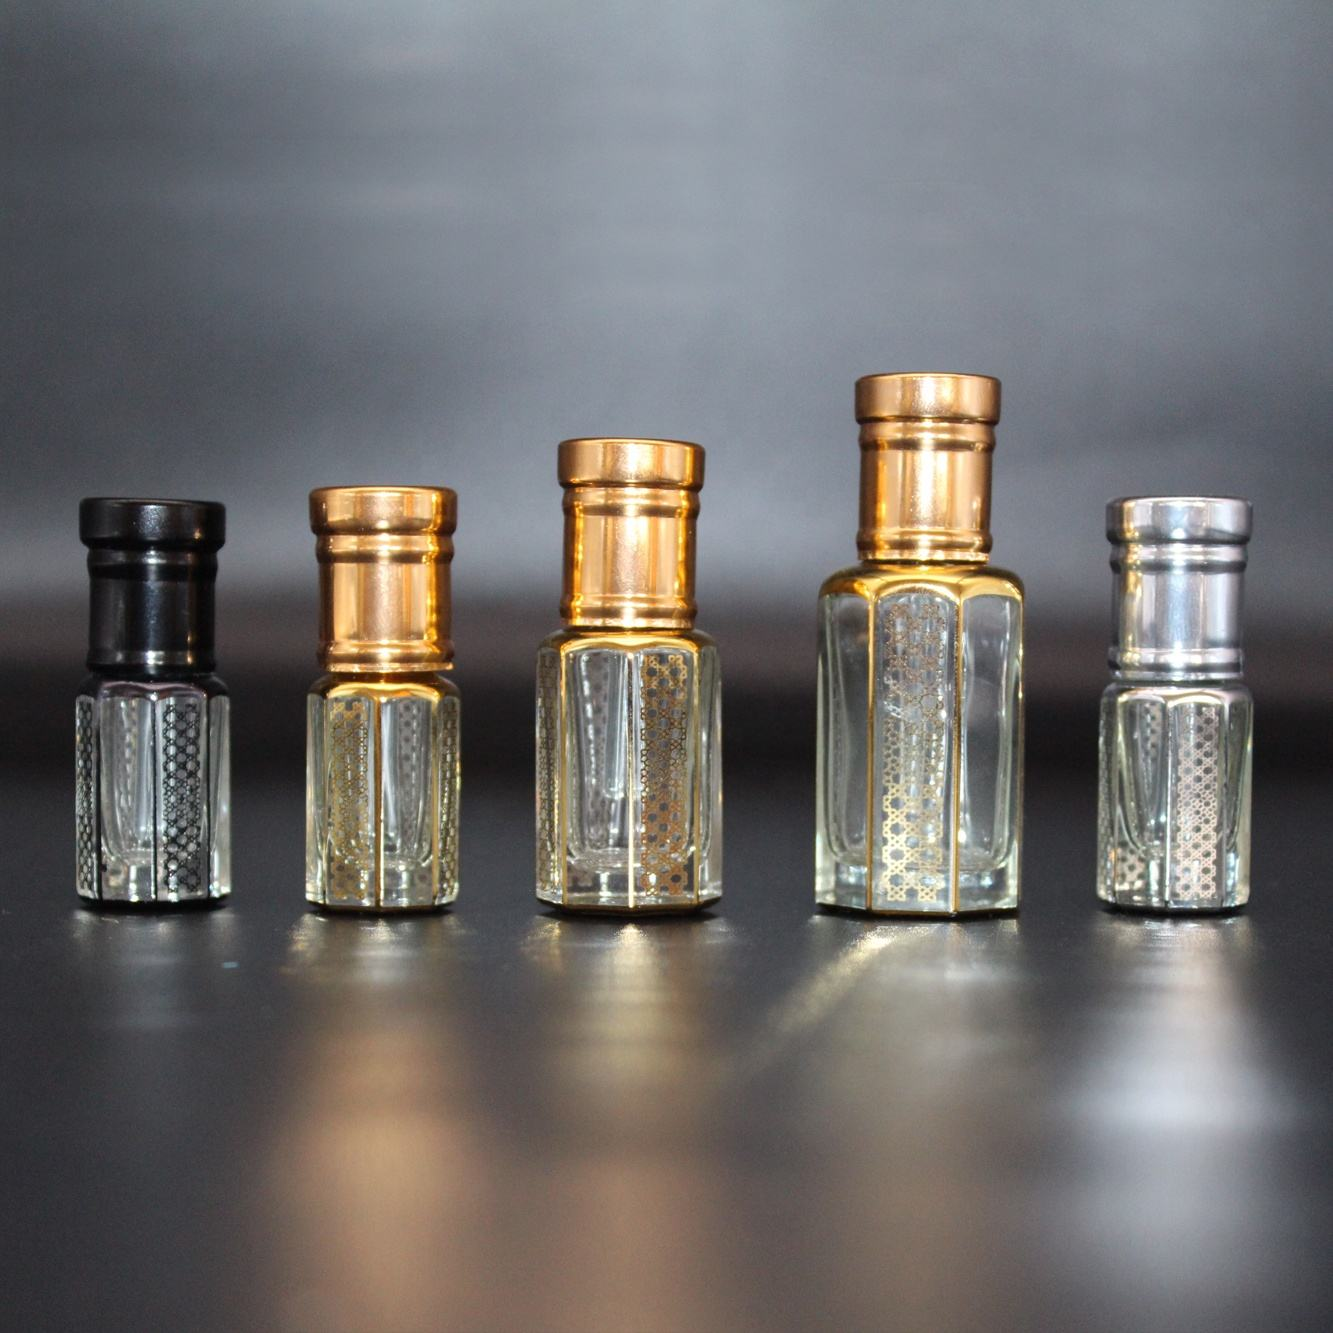 CJ-3ml 6ml 12ml Octagon Attar Gold Hot Stamping Logo Empty Glass Bottle Roll on Perfume Essential Oil Glass Bottle